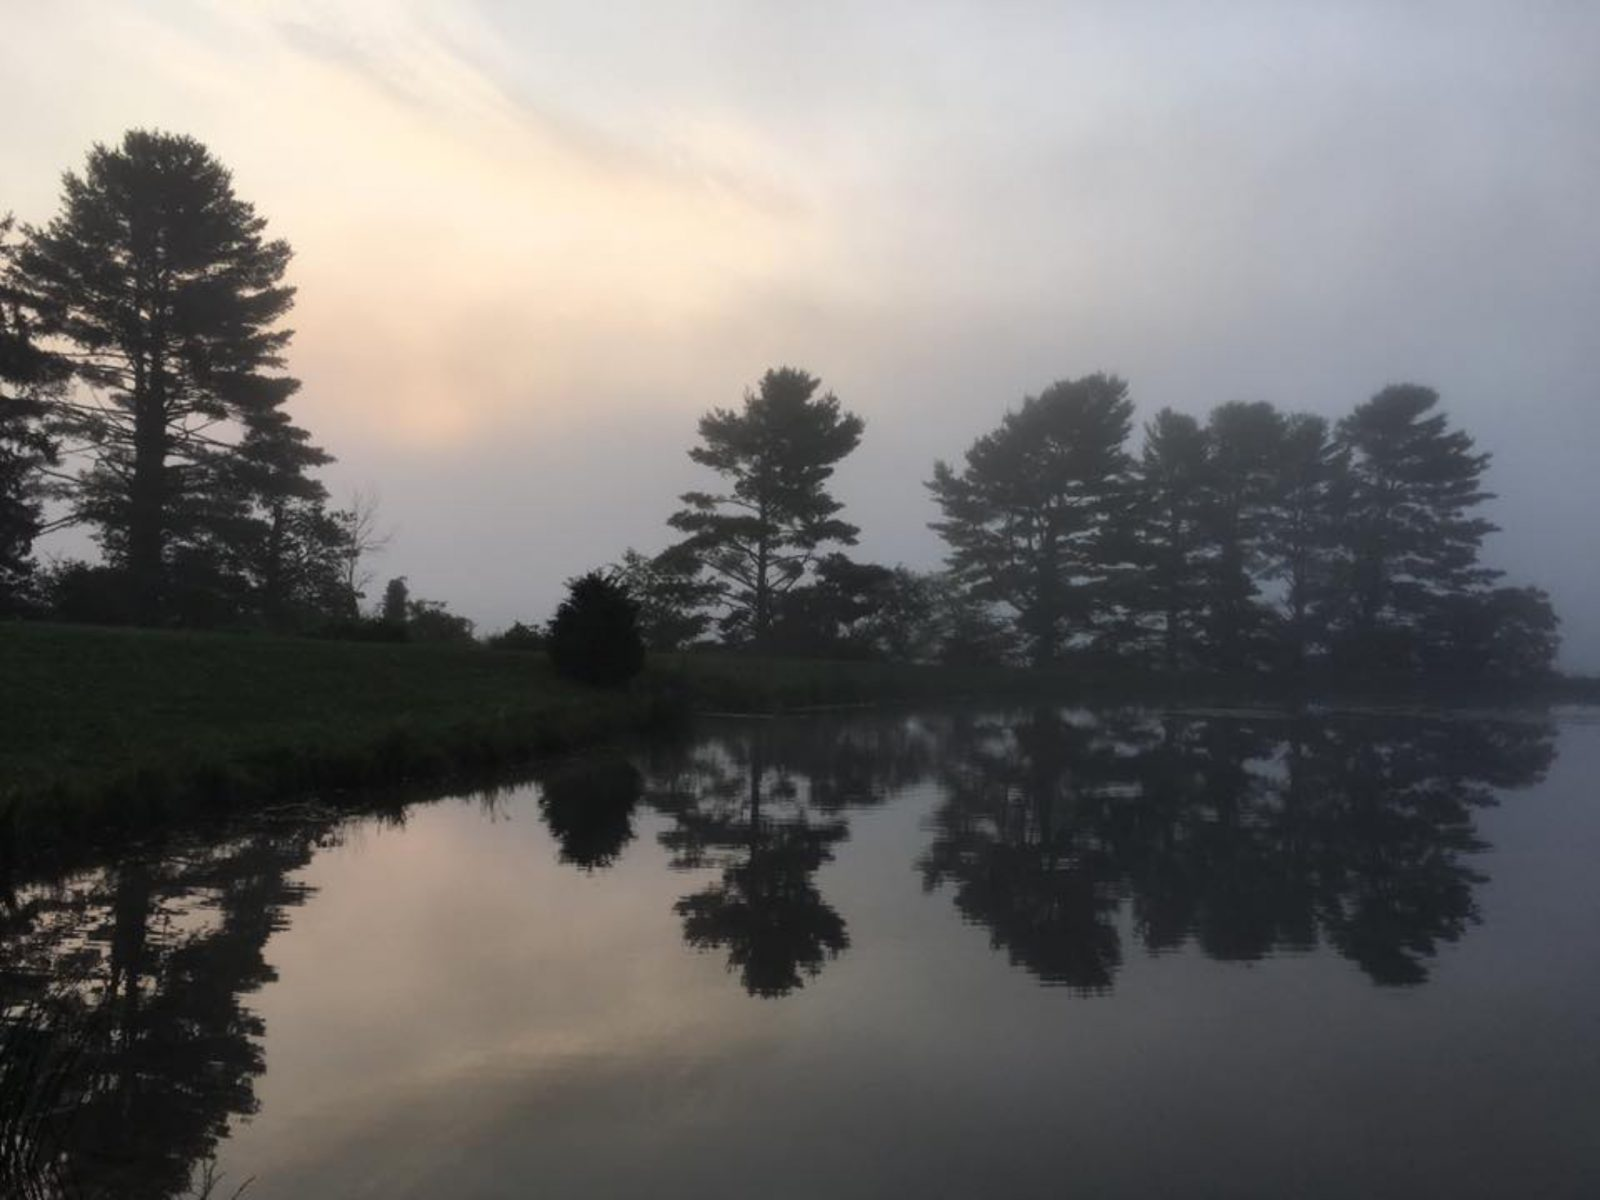 Sunrise in the fog over the pond